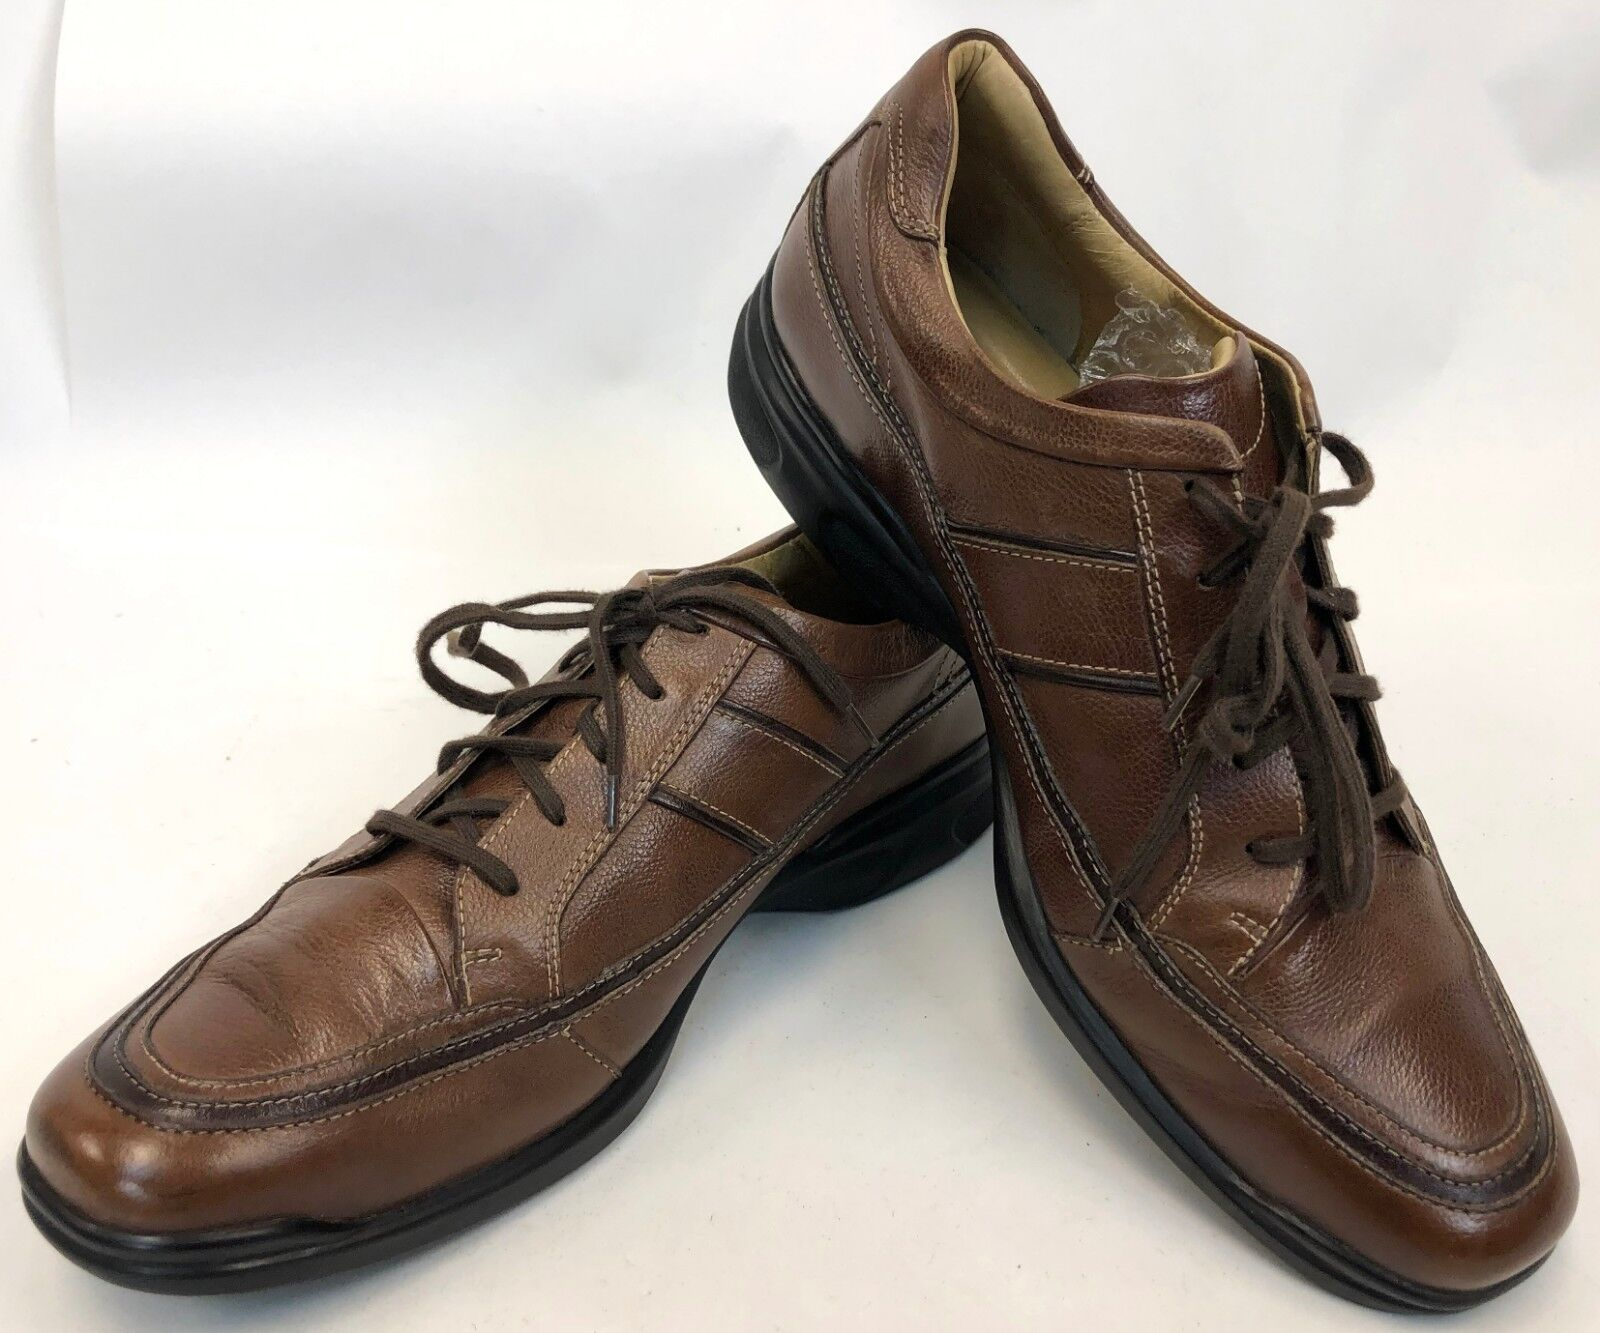 Mens Sheepskin Johnston Murphy Lace Up Casual Comfort Sneakers shoes 10 M